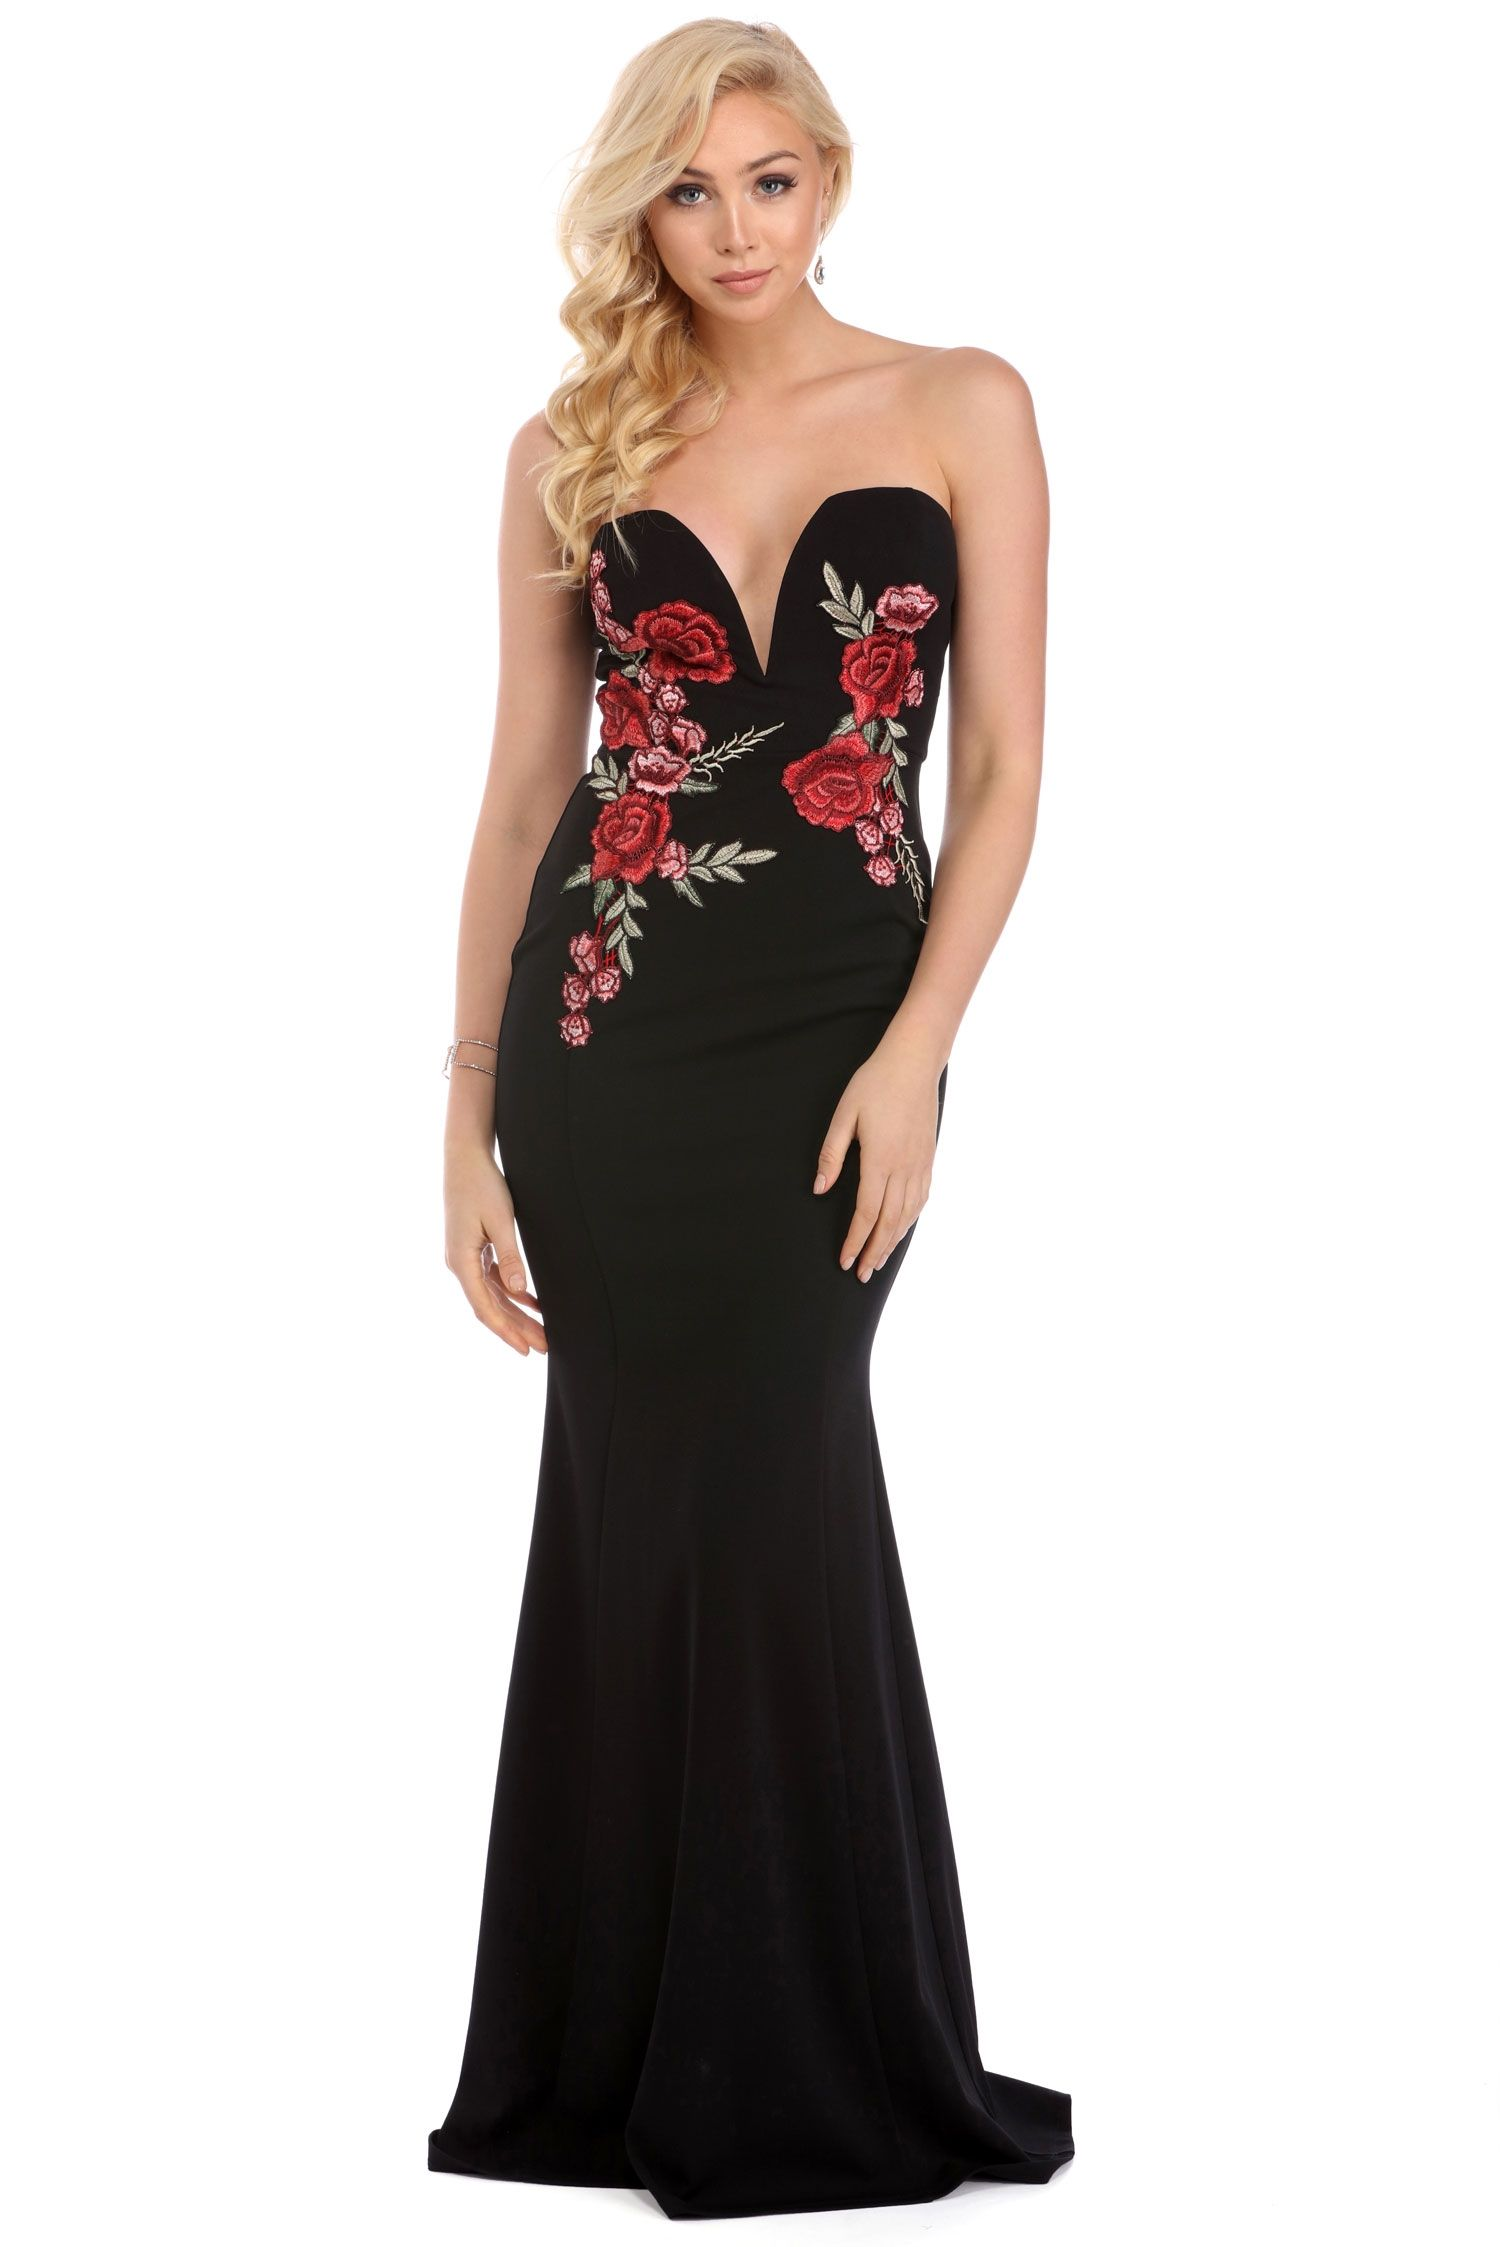 Rosa black rose embroidered dress red carpet ready pinterest